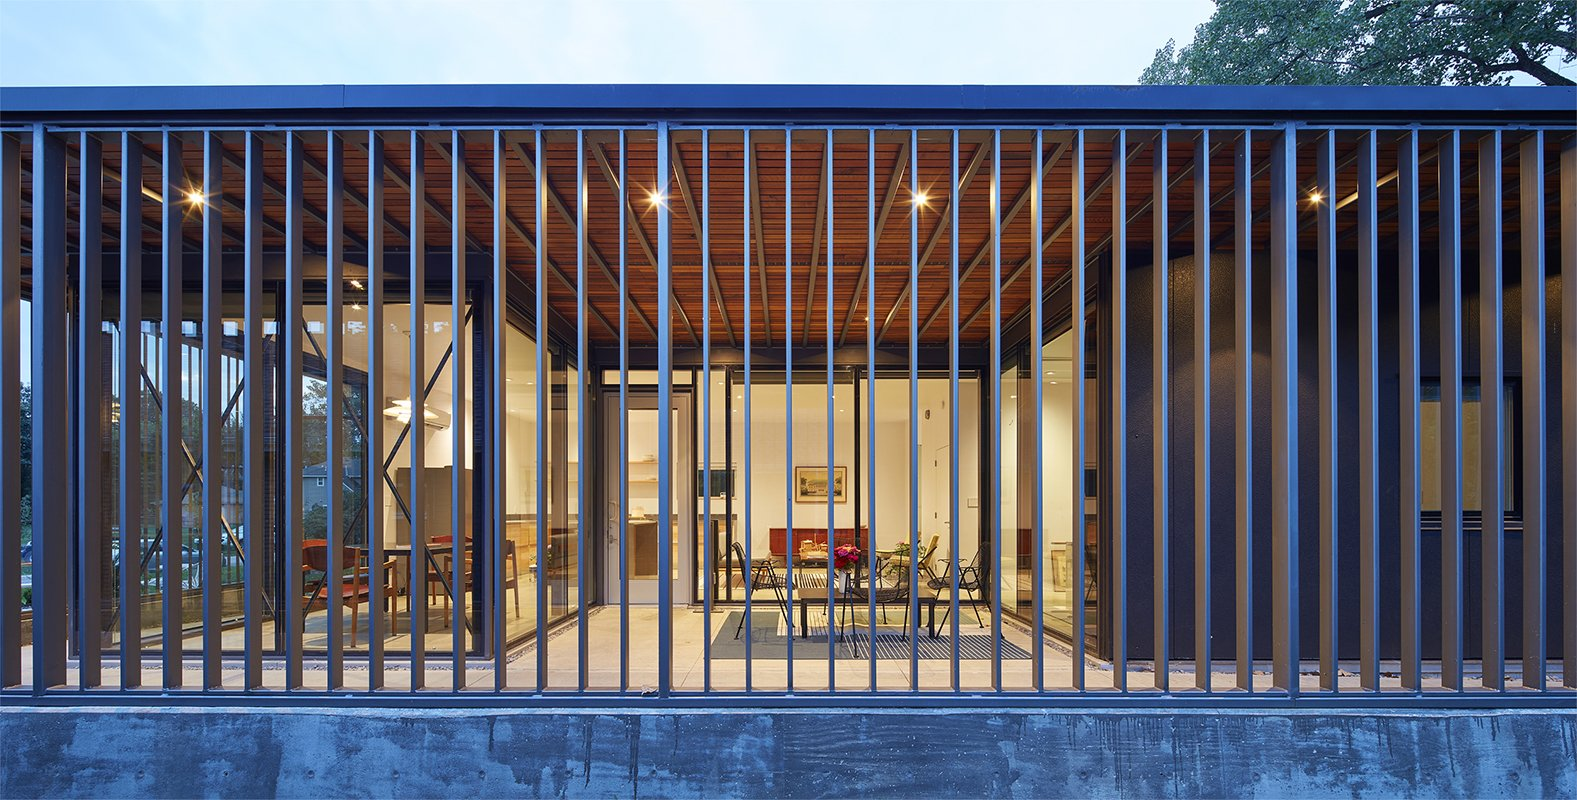 Photo 17 of 19 in 9 Best Homes With Interesting Screened Facades - Dwell